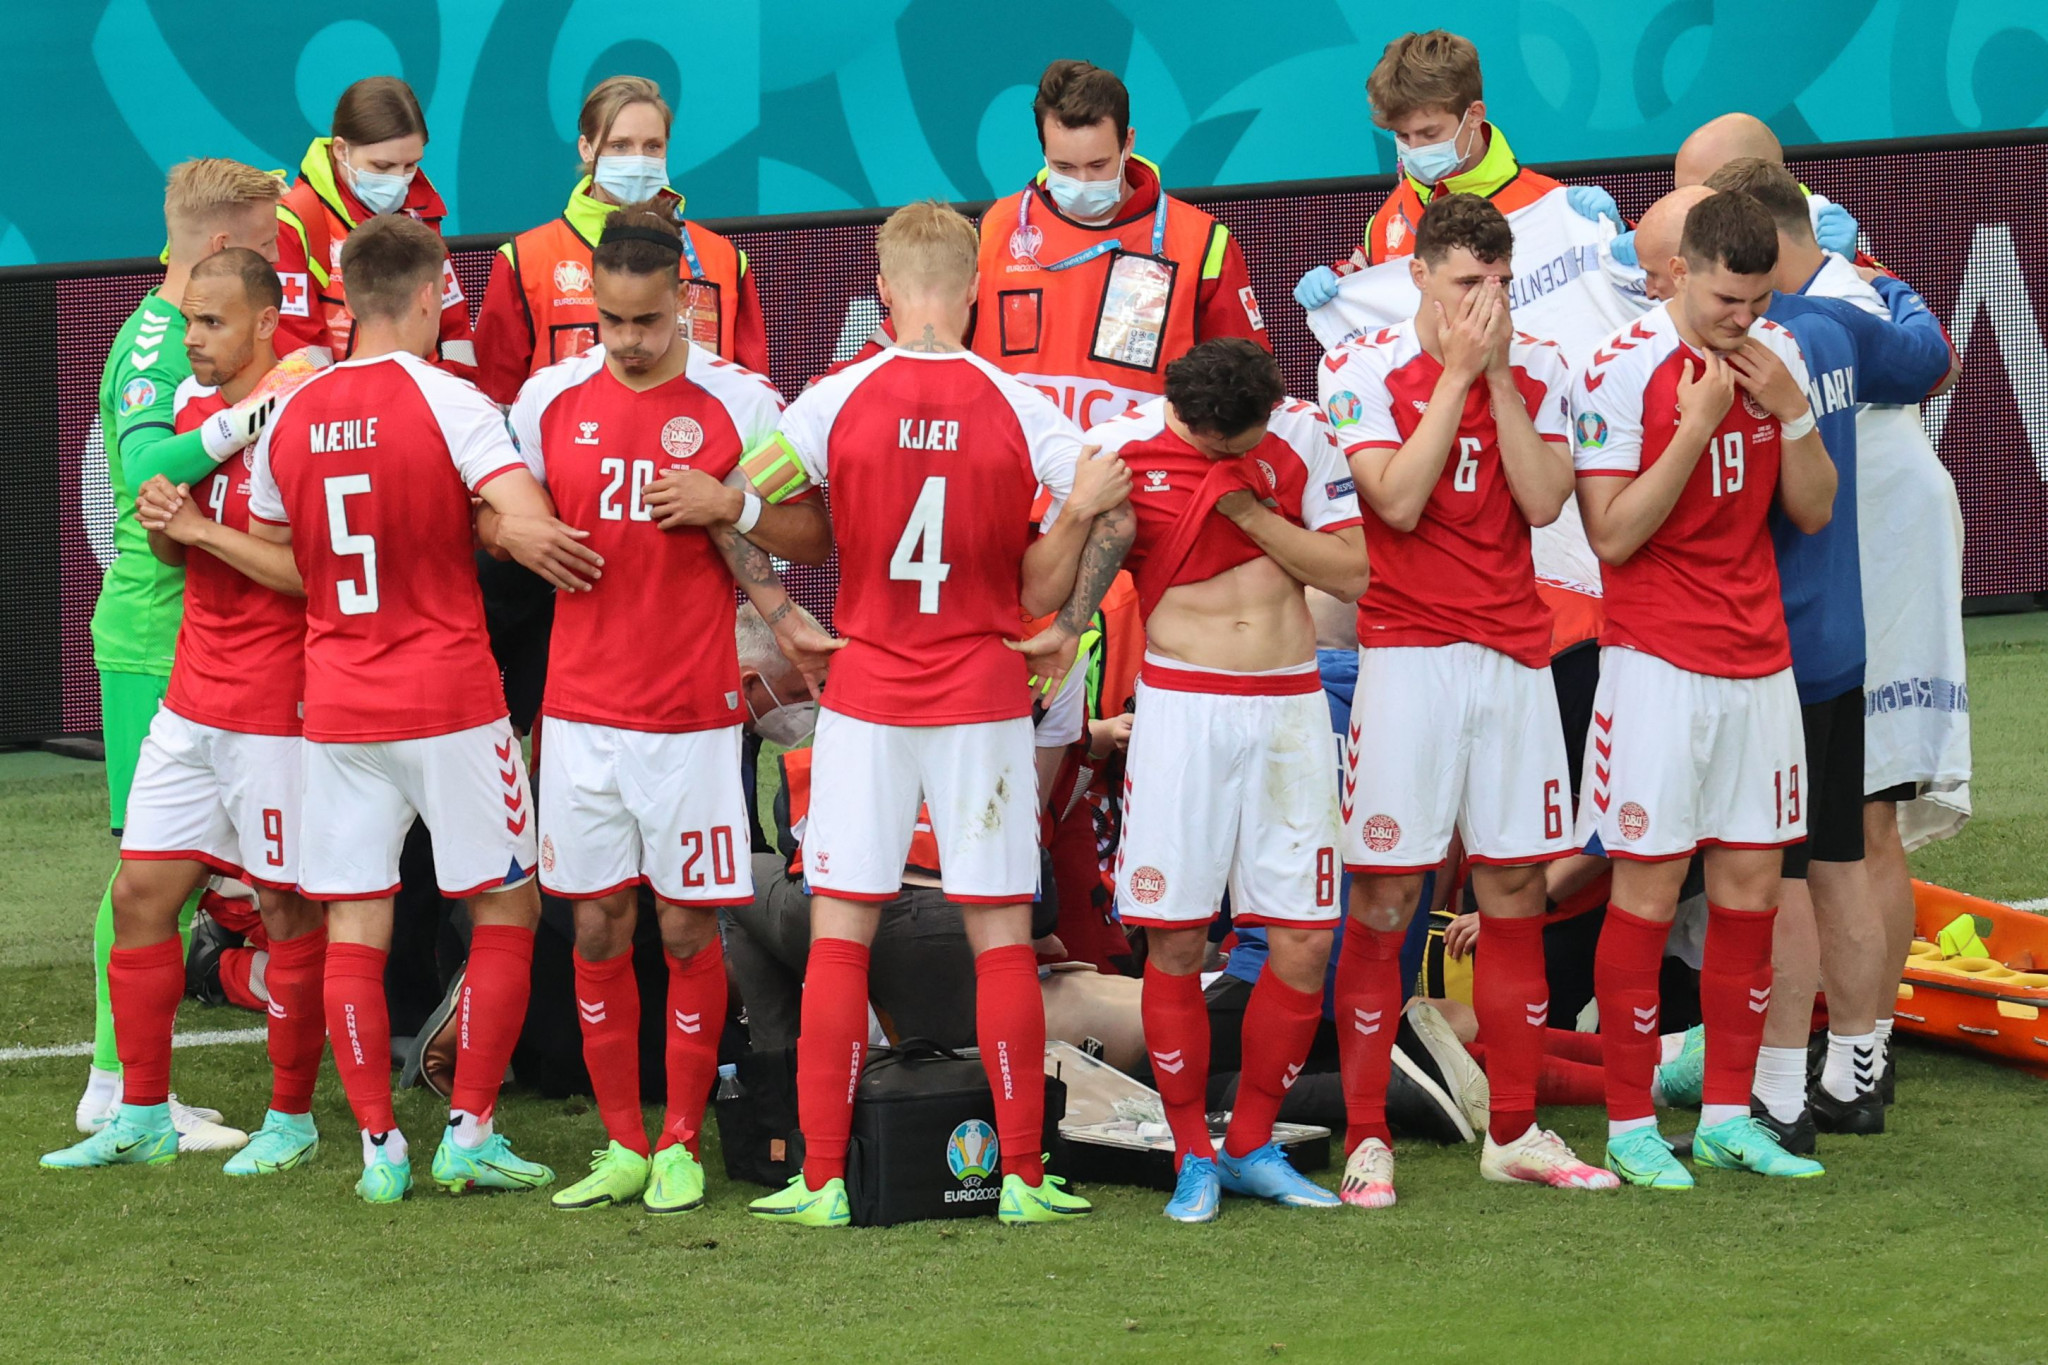 Denmark have been awarded a fair play award for their actions in the aftermath of Christian Eriksen's cardiac arrest, including forming a wall to shield their team mate ©Getty Images